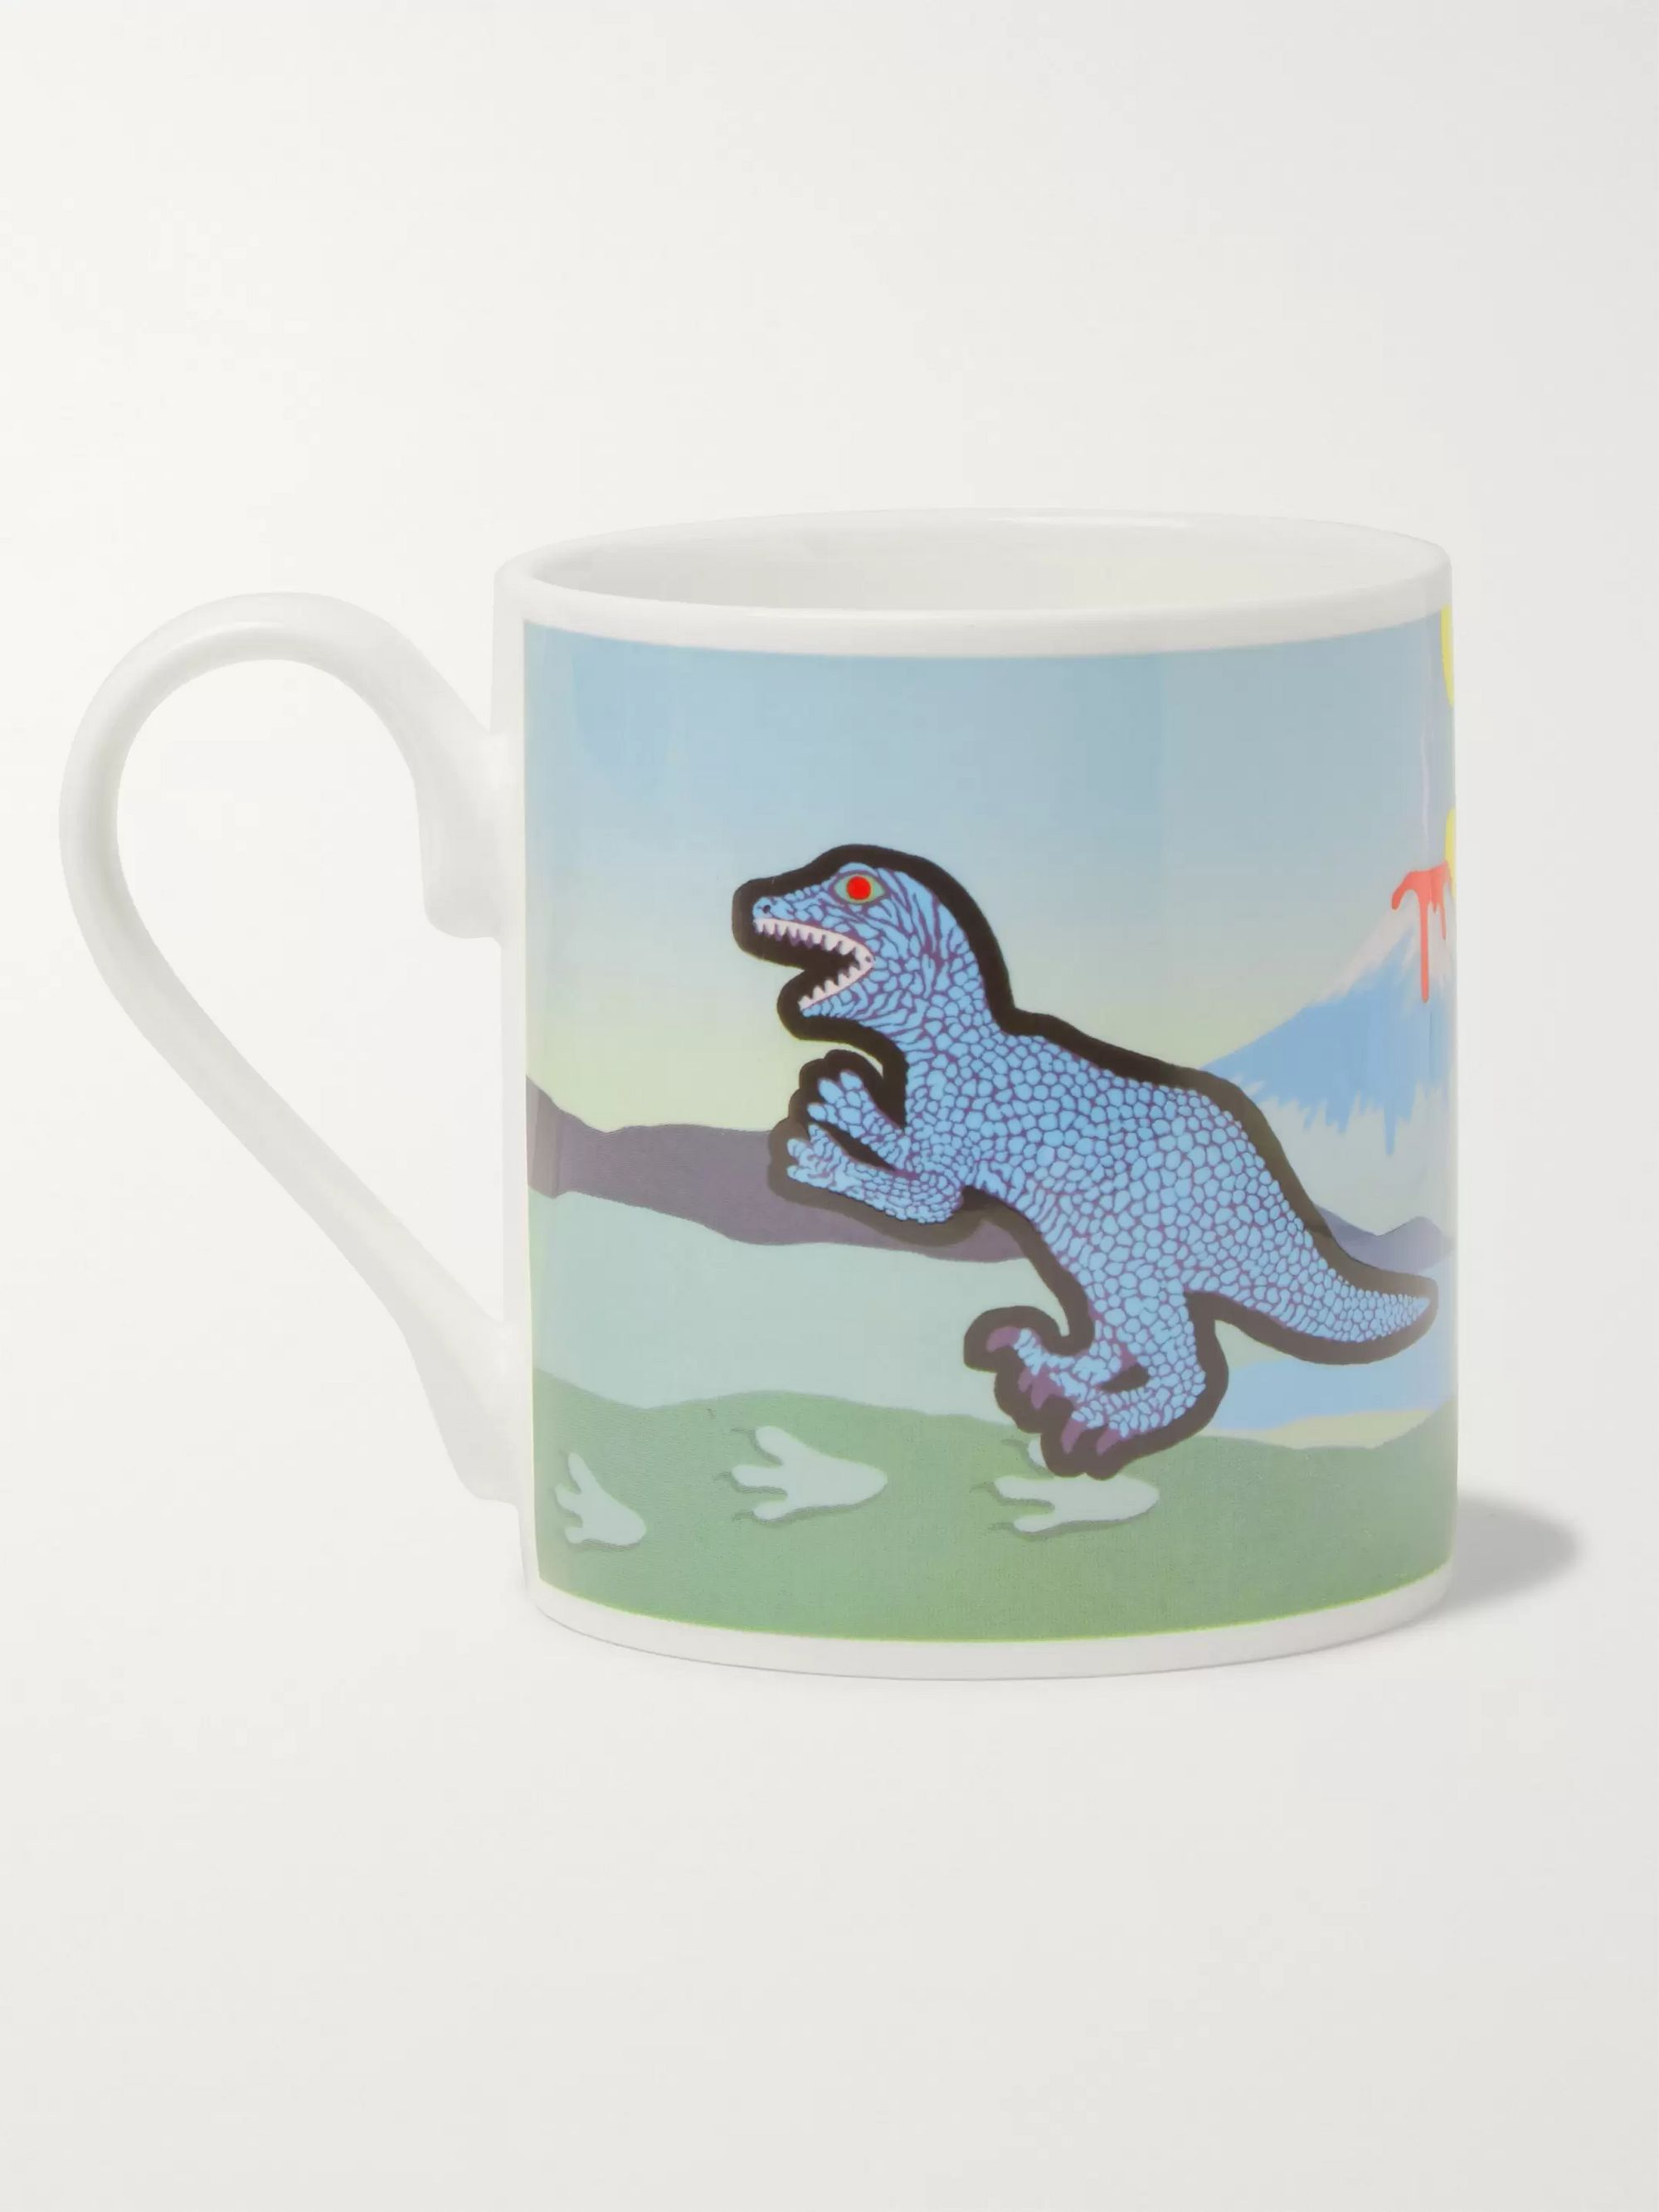 Paul Smith London Parks Bone China Mug